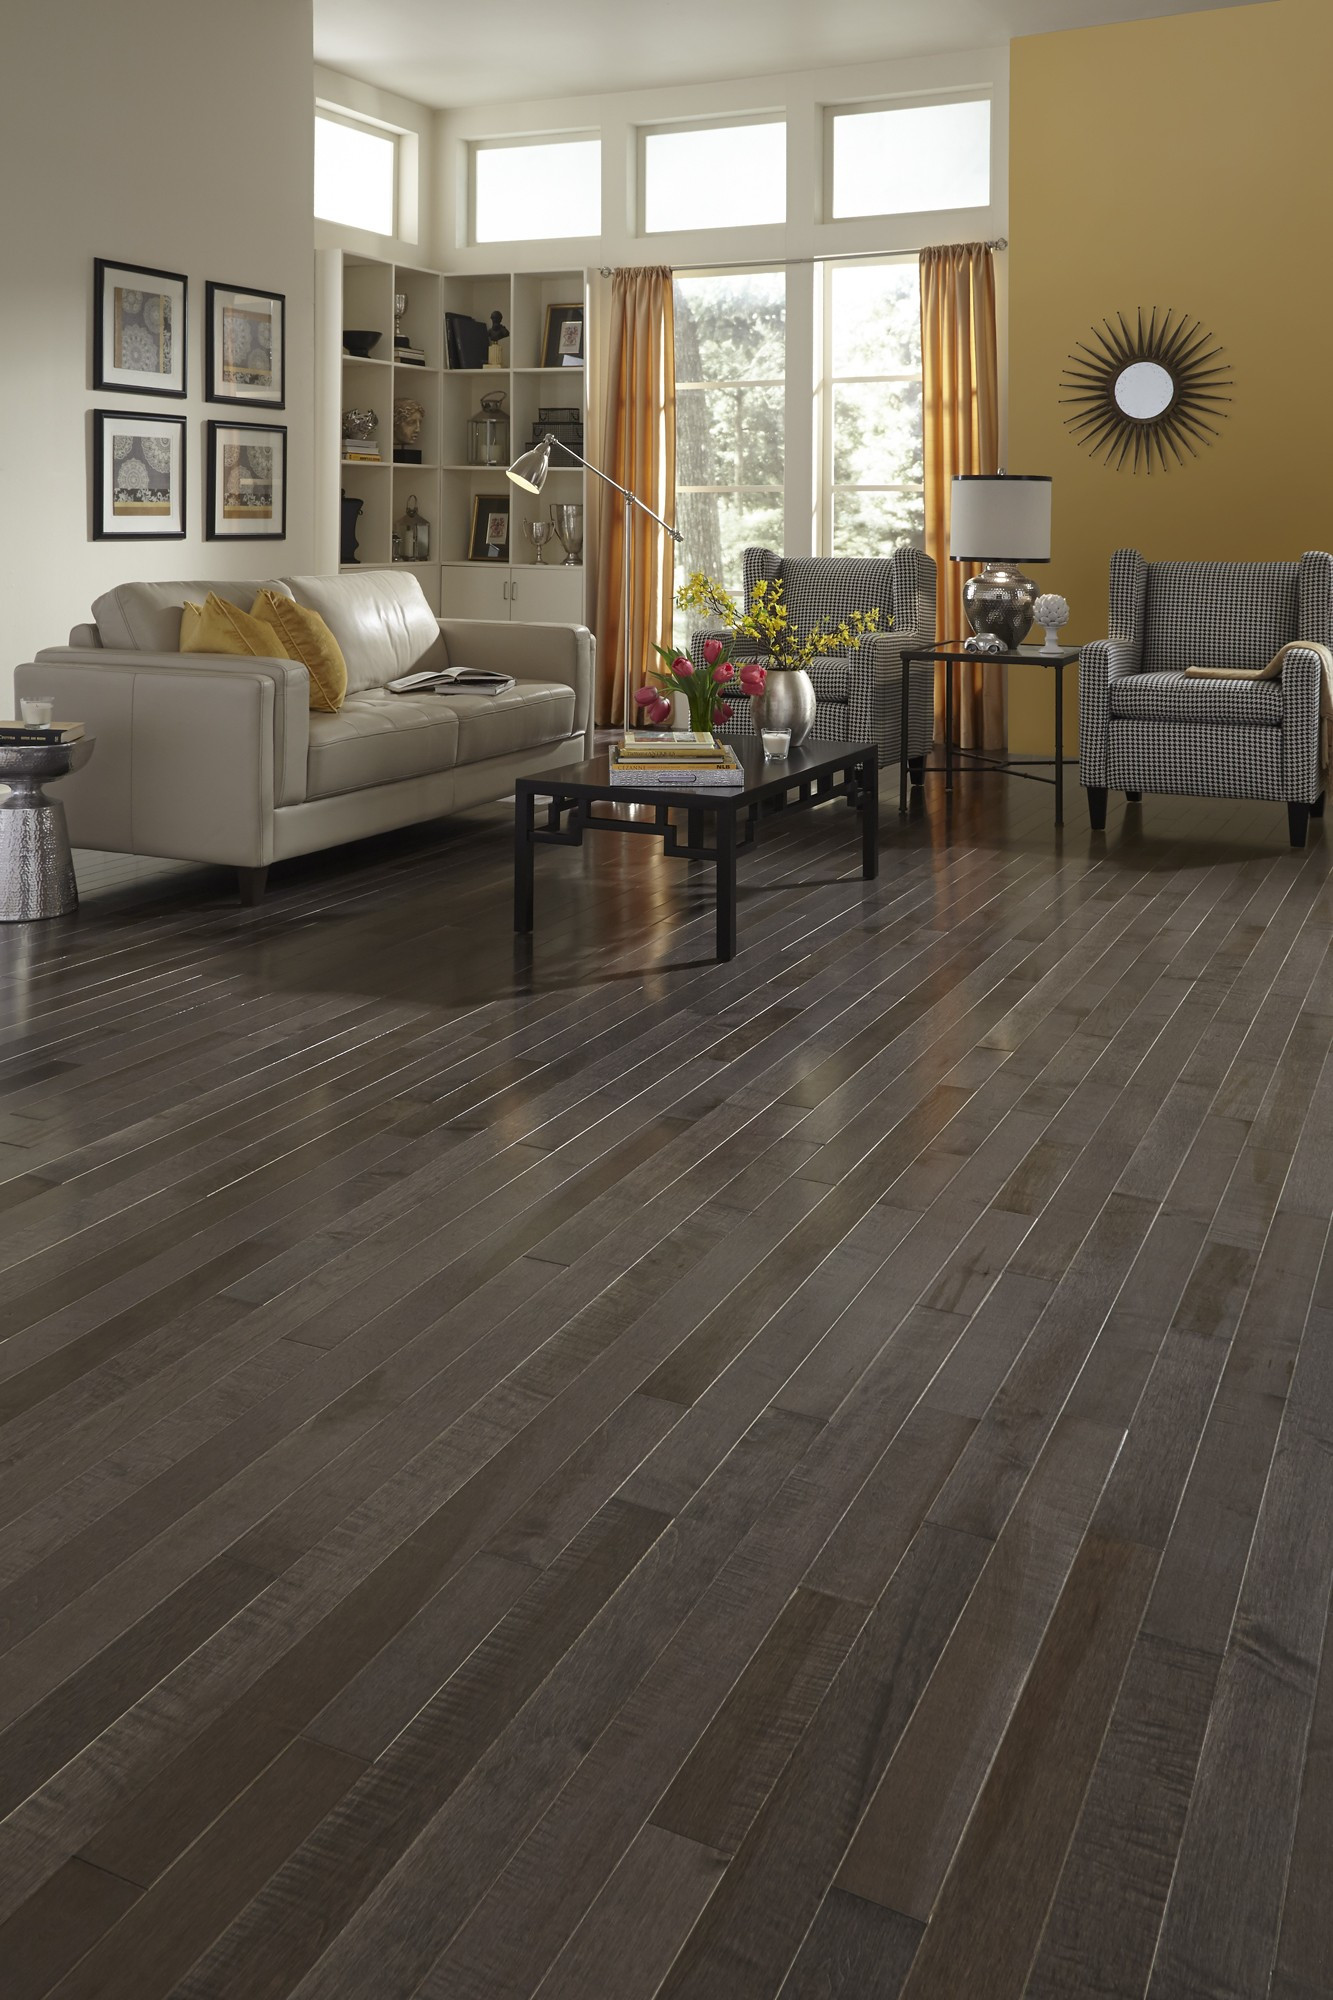 Cleaning Dark Hardwood Floors Of 15 Elegant How Much is Hardwood Flooring Pics Dizpos Com Inside How Much is Hardwood Flooring Awesome August S top Floors social Gallery Of 15 Elegant How